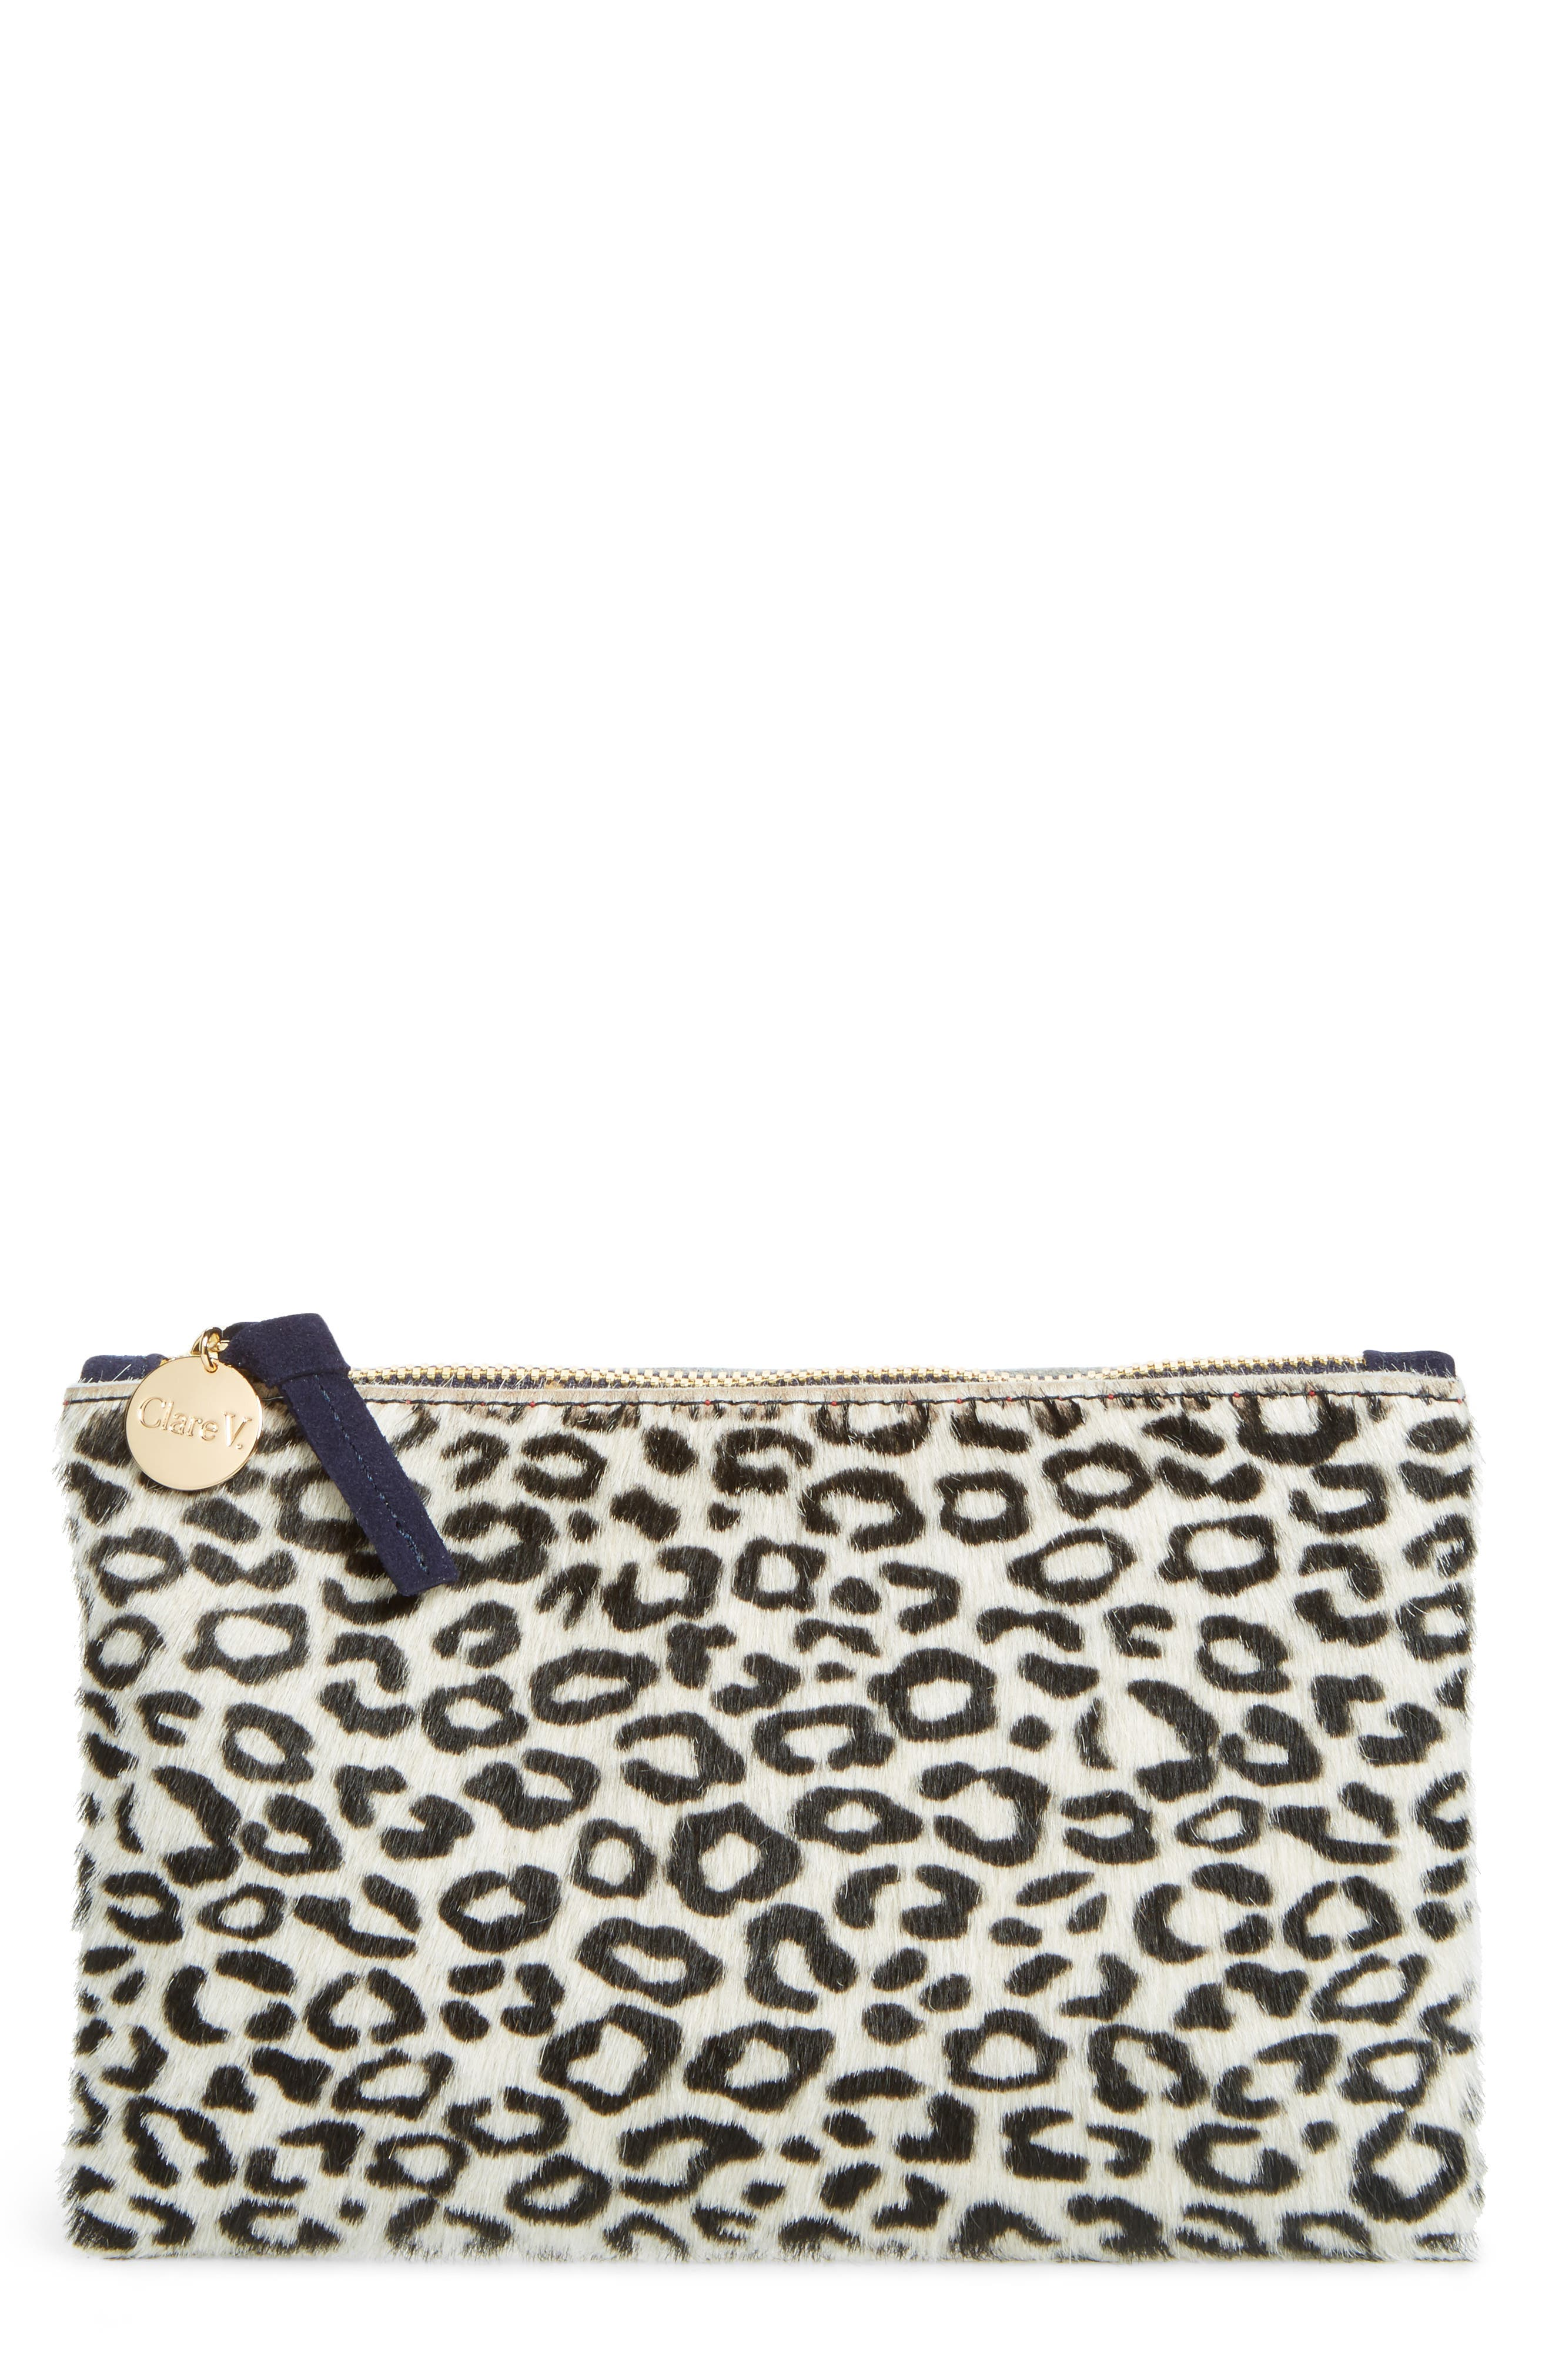 Main Image - Clare V. Ocelot Print Genuine Calf Hair Wallet Clutch